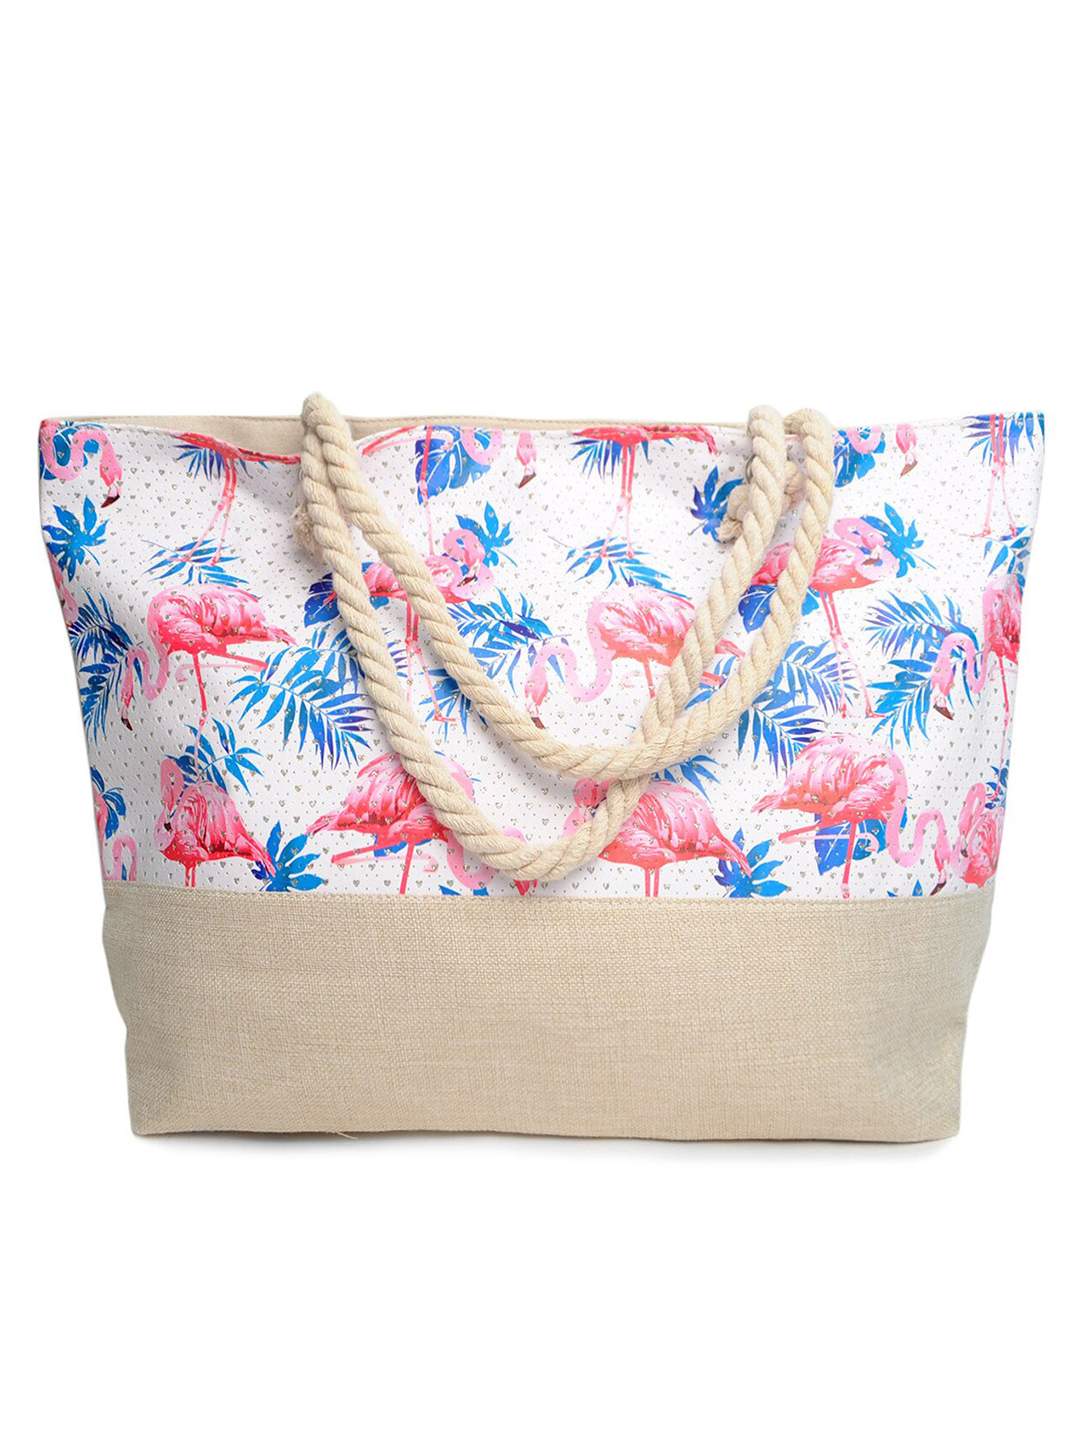 Flamingo x Palm Leaves Tote Beach Bag -Light Beige - Front